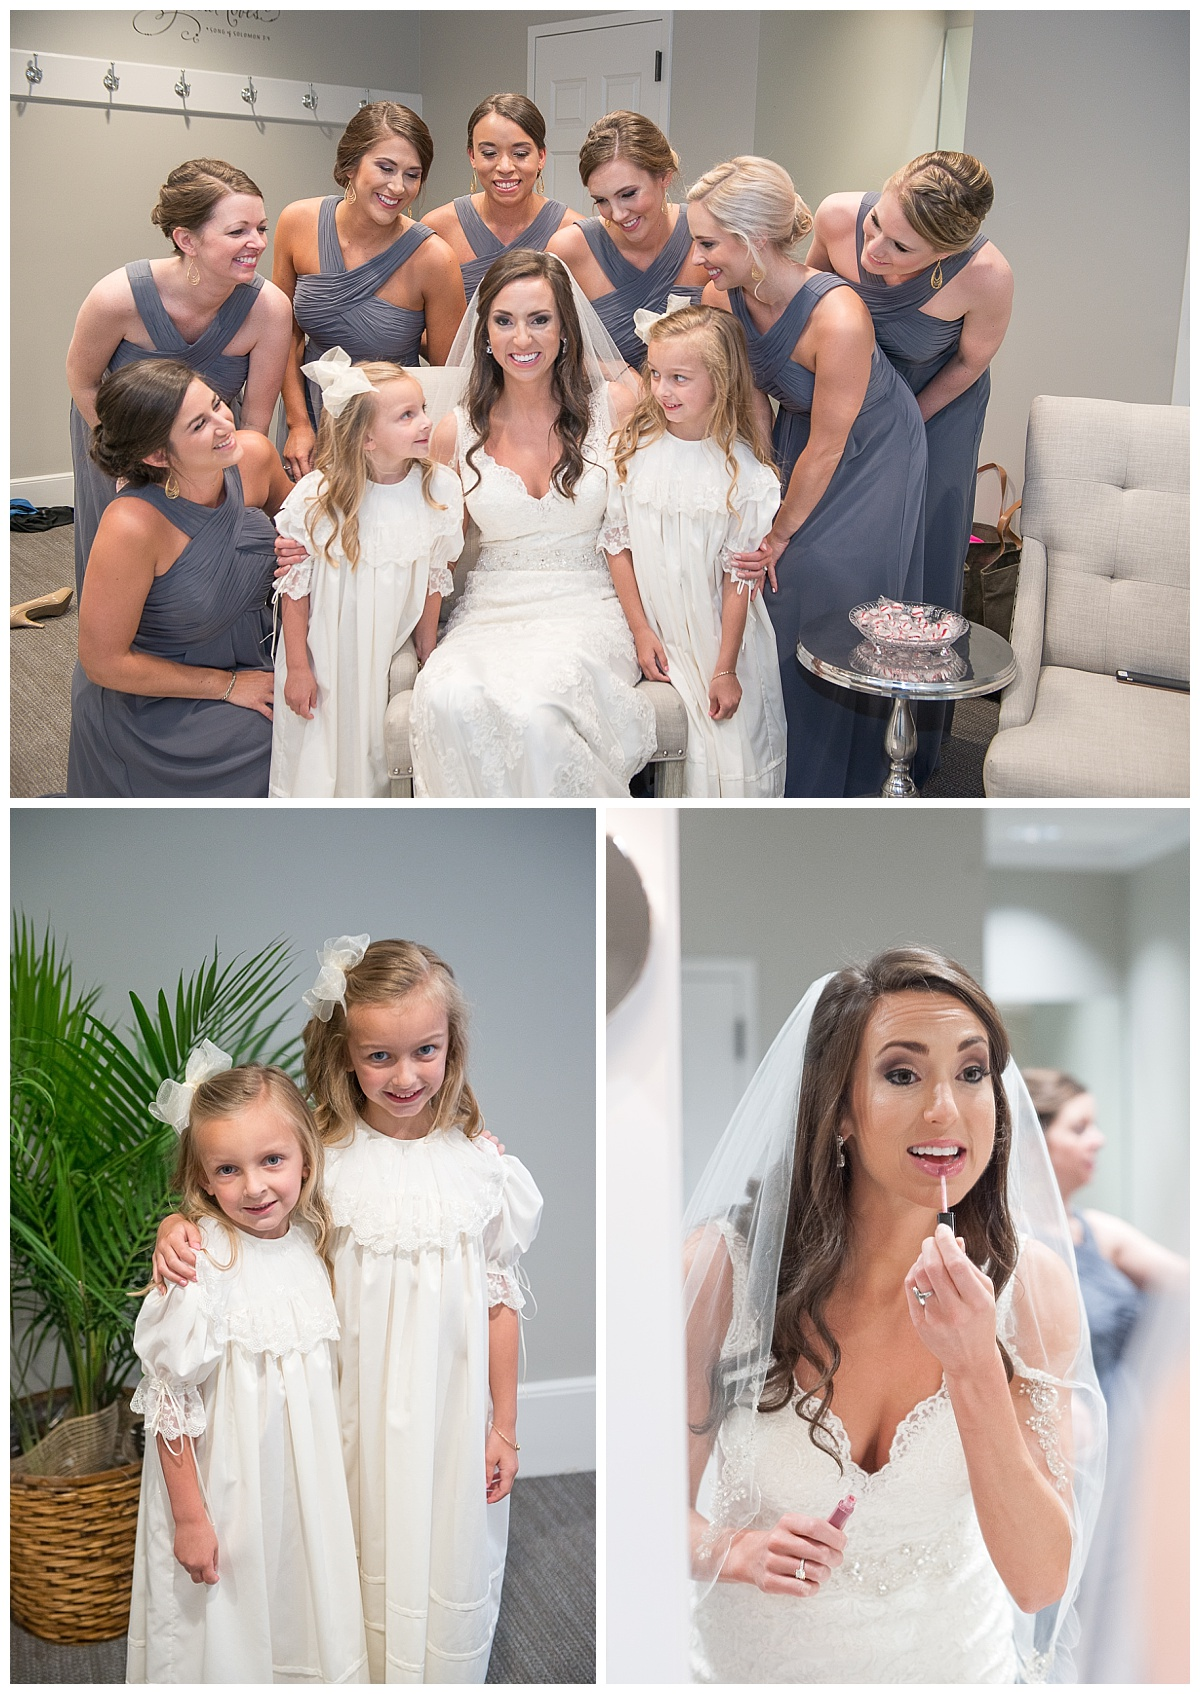 Dressing room flowergirls photos